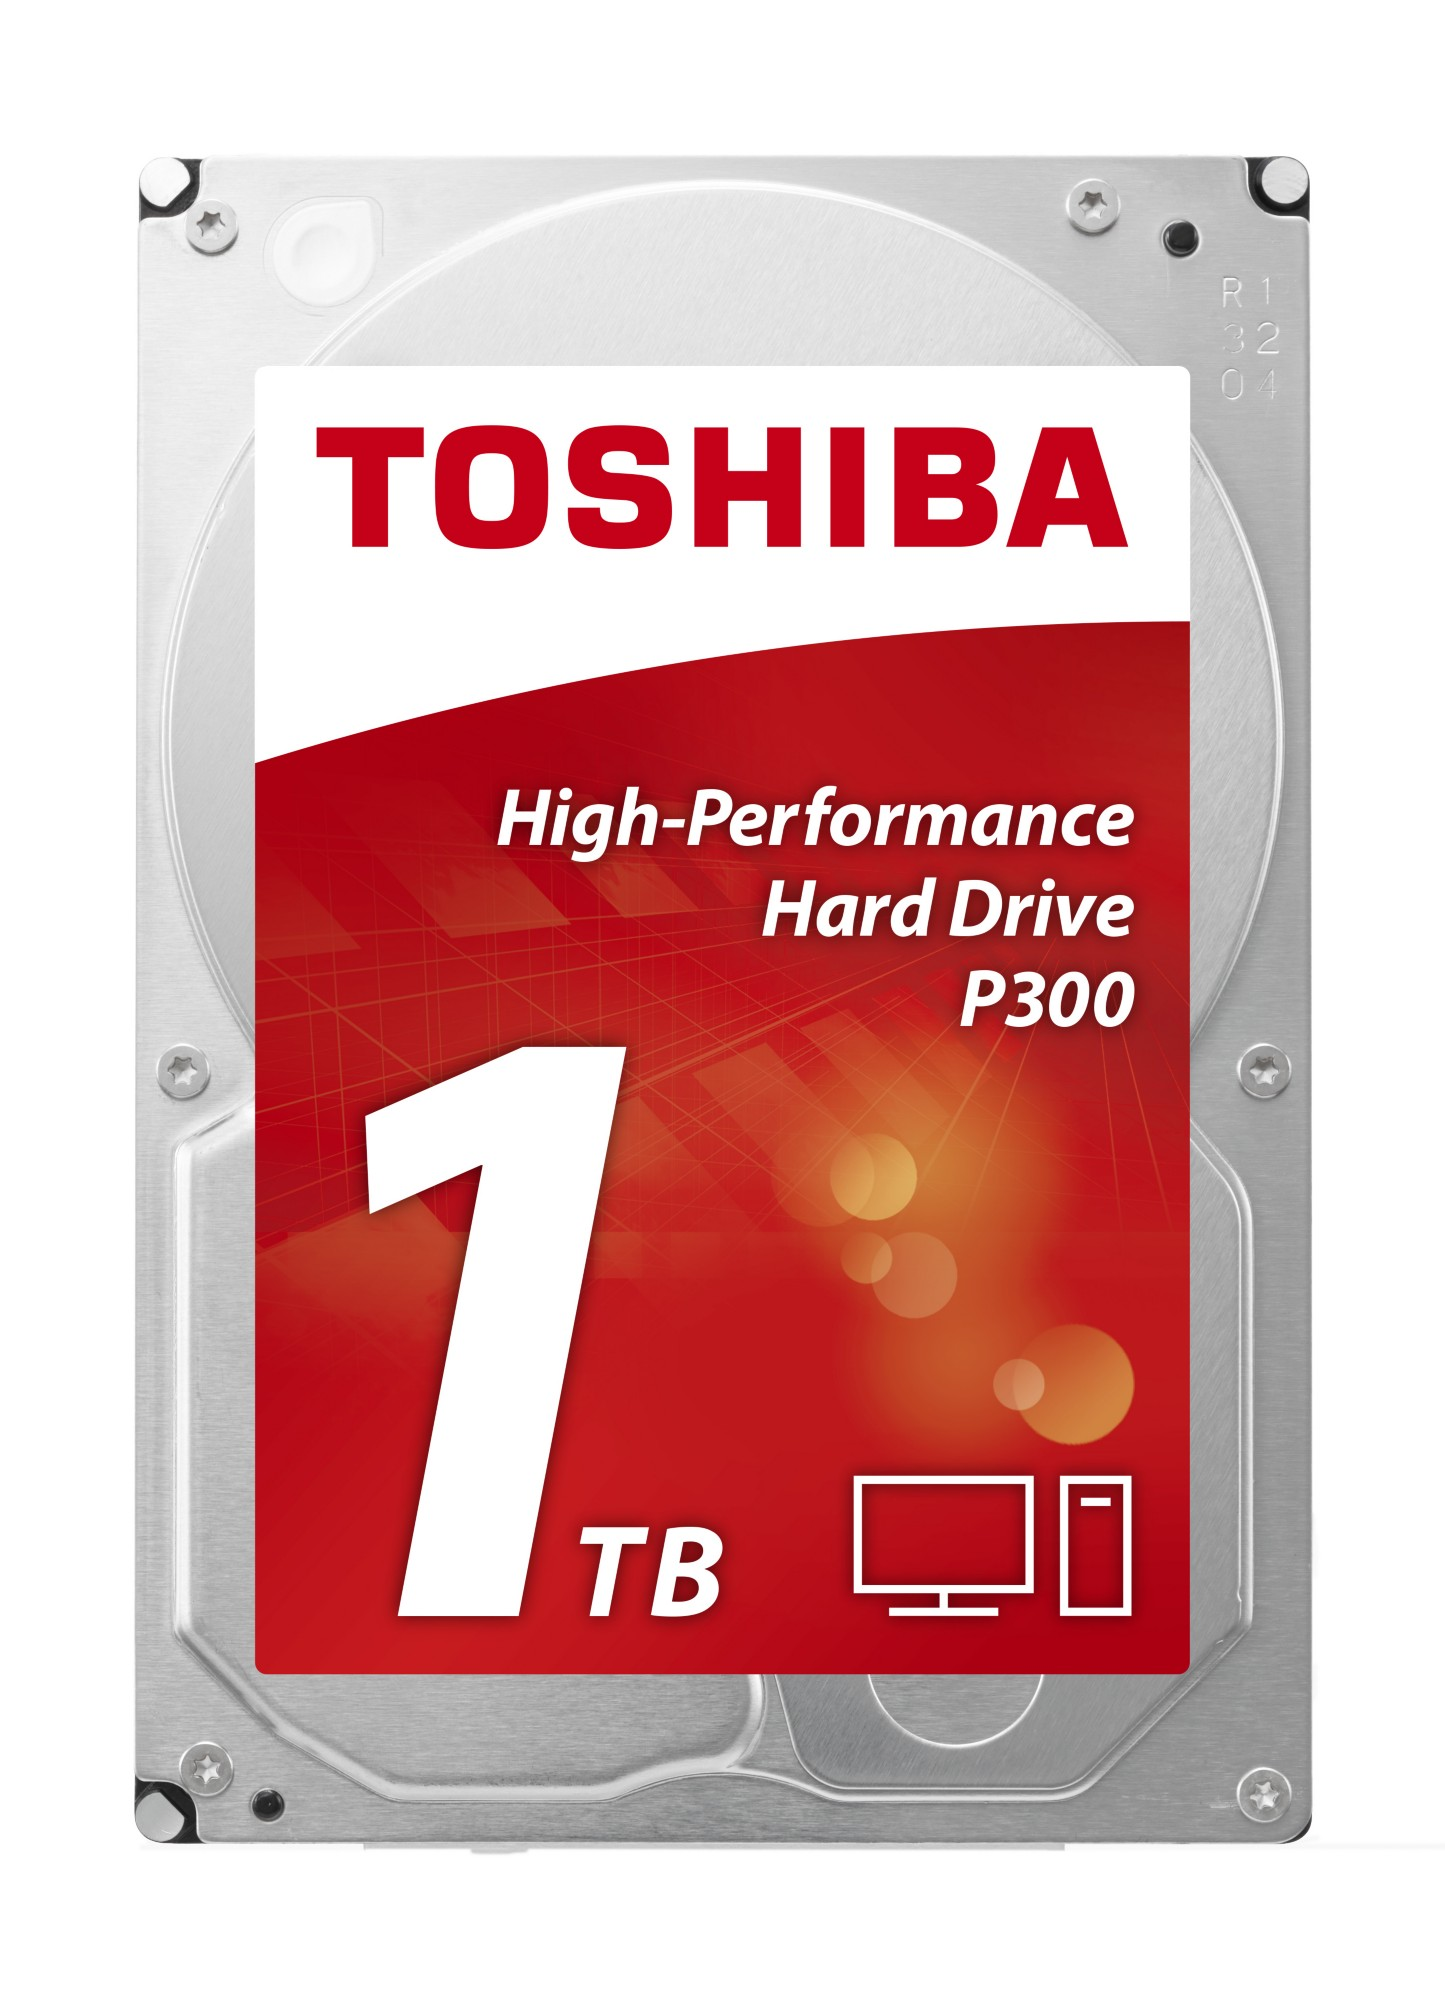 TOSHIBA P300 1TB HDD 1000GB SERIAL ATA III INTERNAL HARD DRIVE